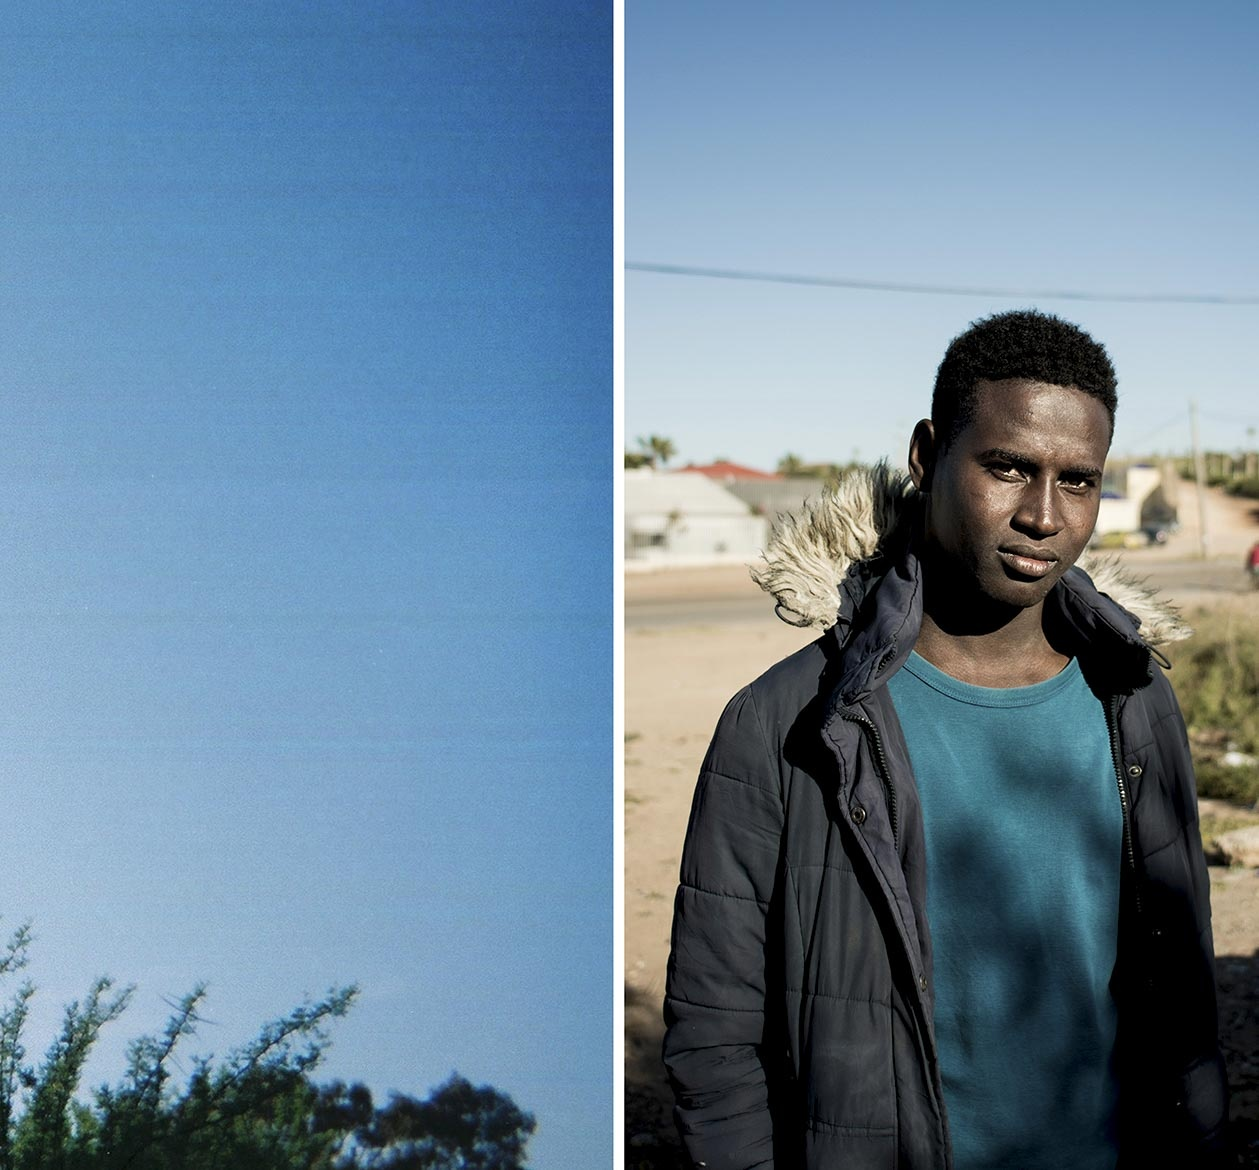 What Gives Migrants and Refugees Hope?